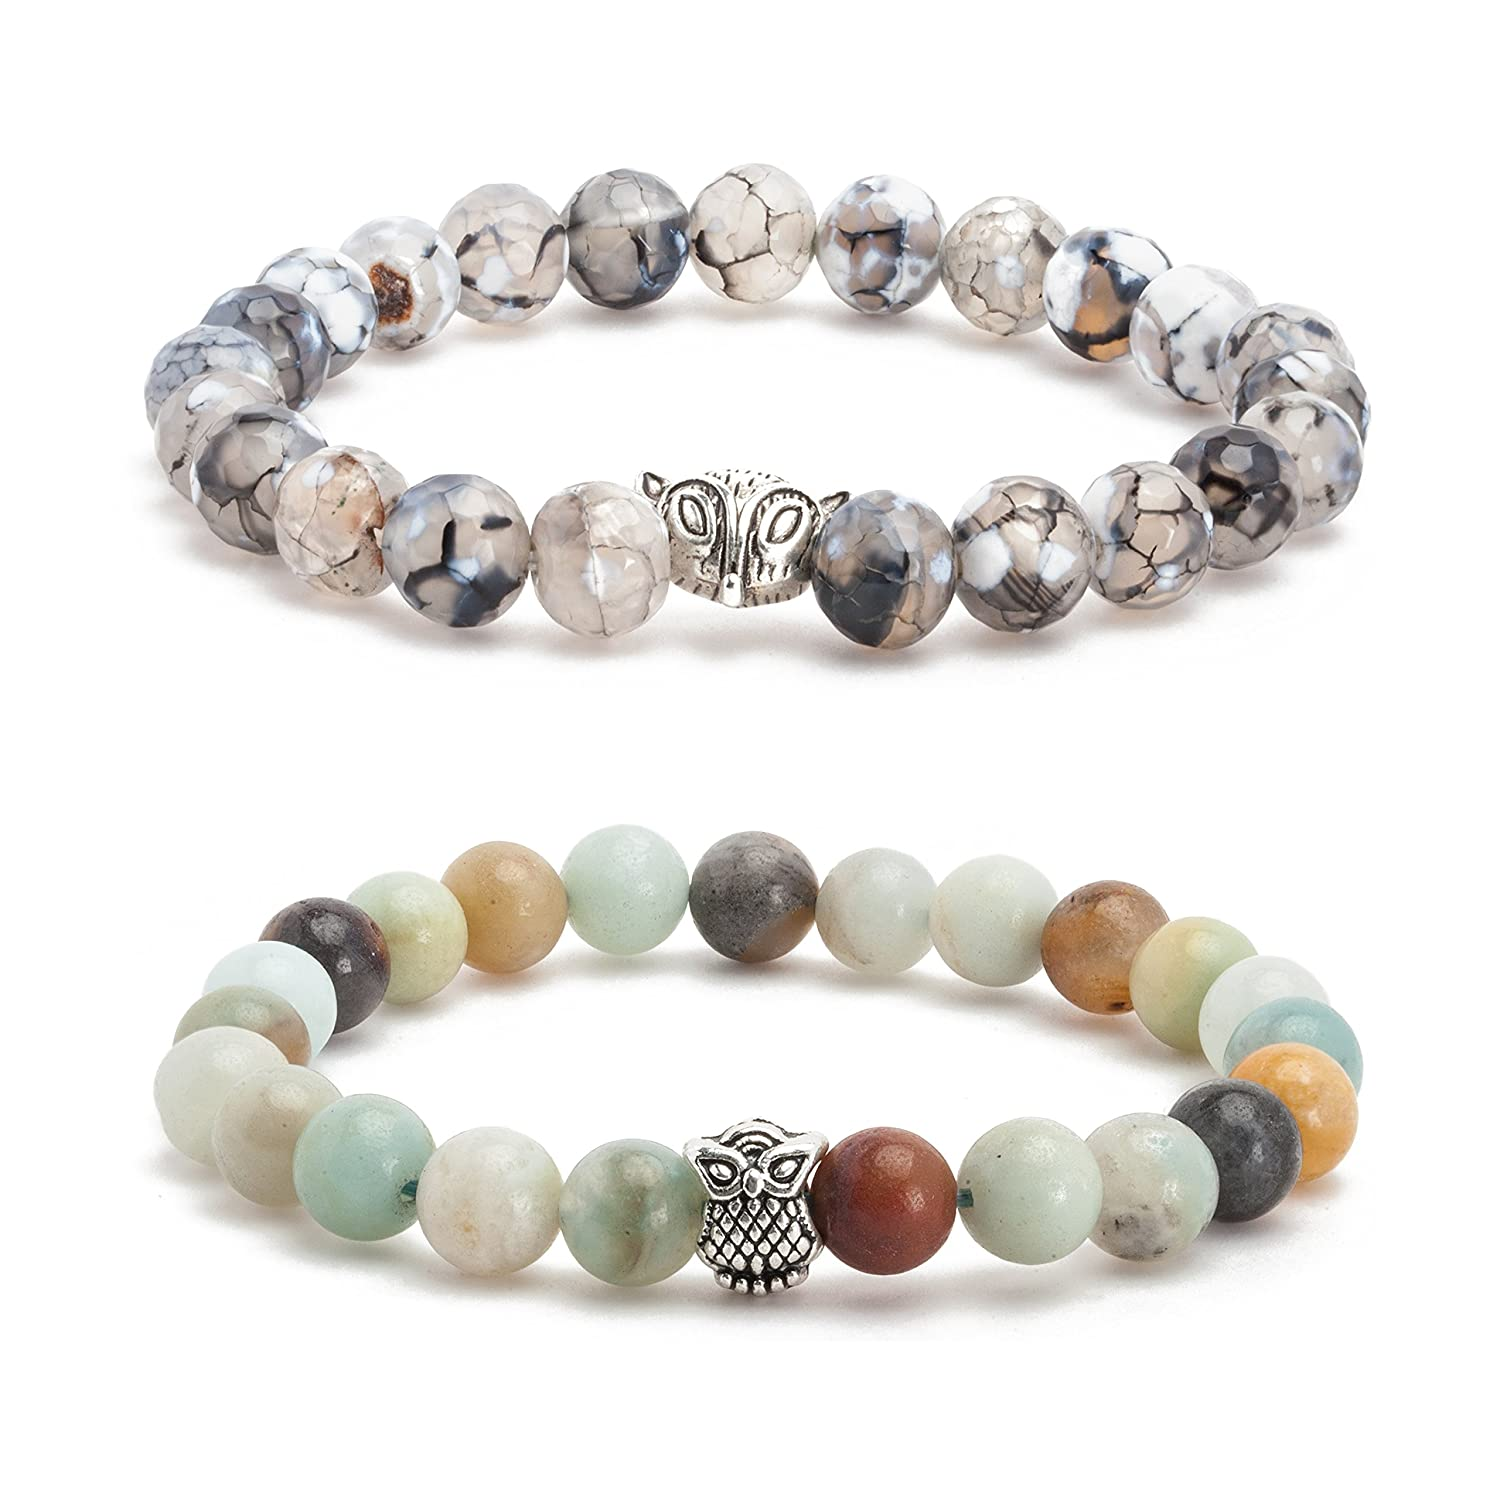 Dream Catcher Mens Womens Lava Rock Turquoise Matte Agate Jasper Beaded Bracelet Energy Beads Silver Plated Head Wenzhai Jewelry Co. Ltd. AMS030002-02